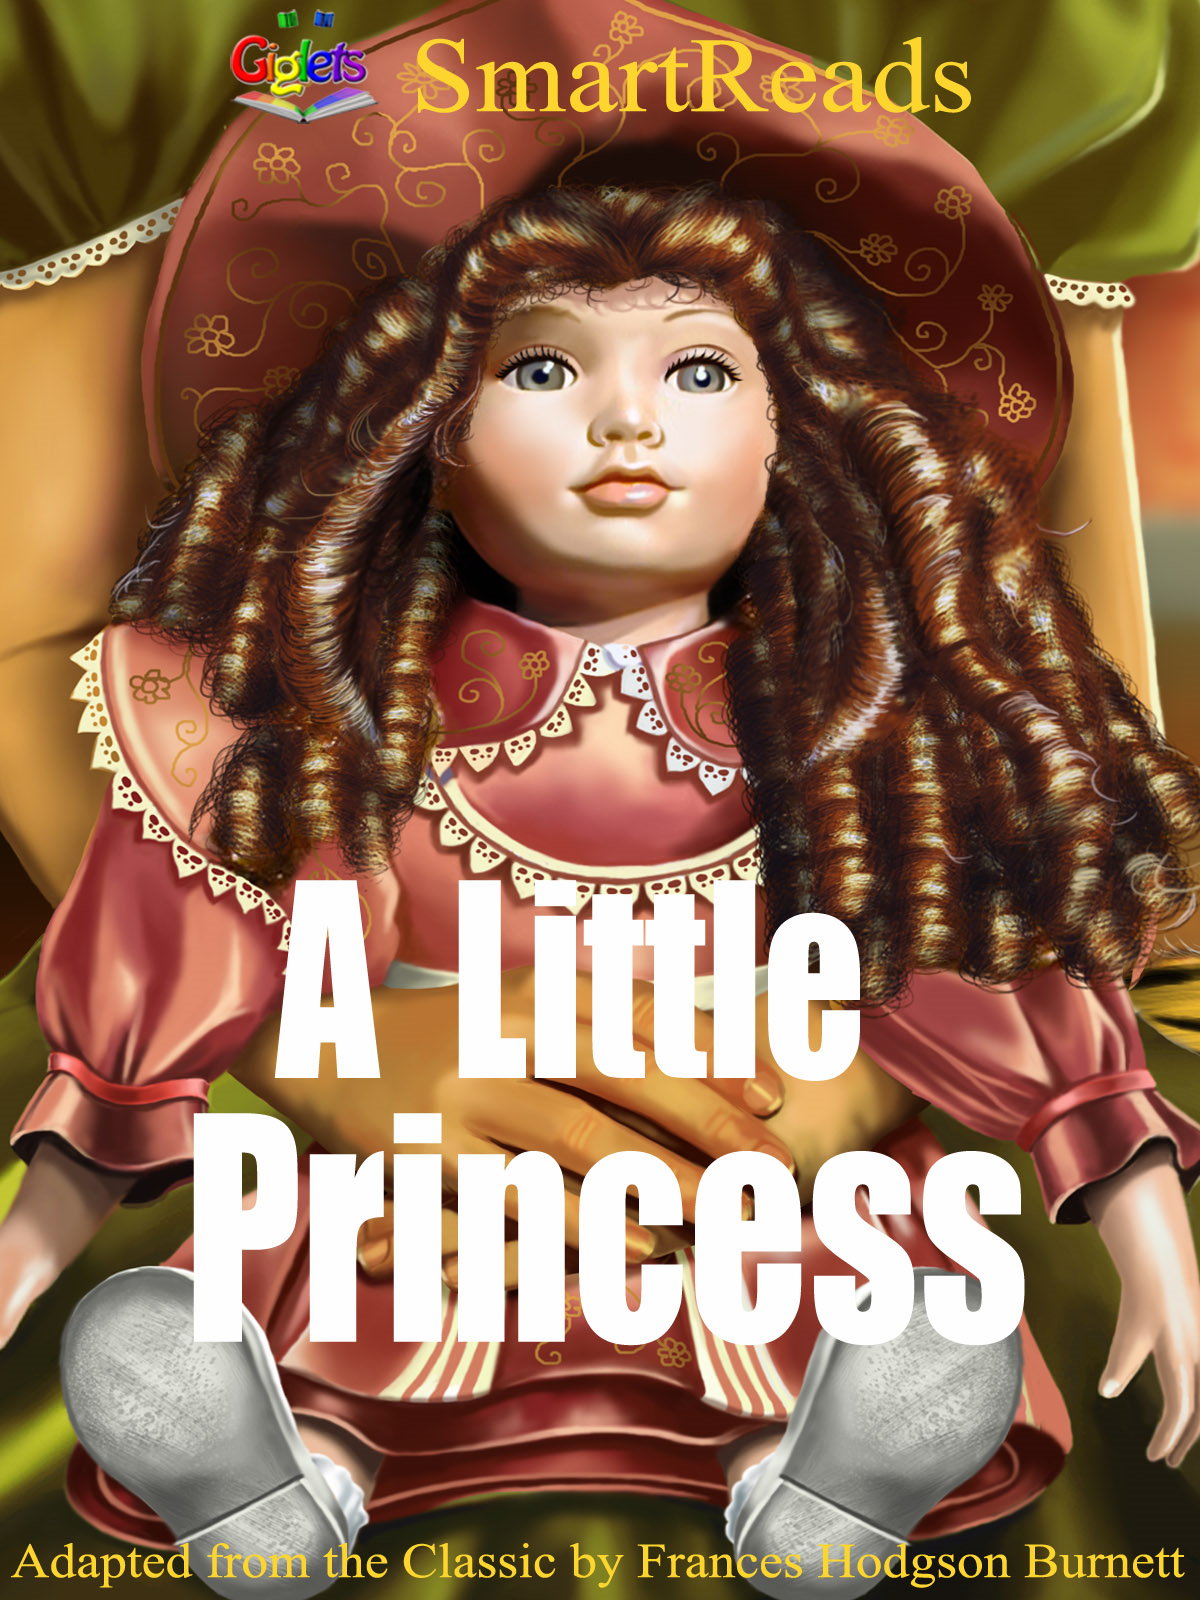 SmartReads A Little Princess Adapted from the Classic by Frances Hodgson Burnett By: Giglets